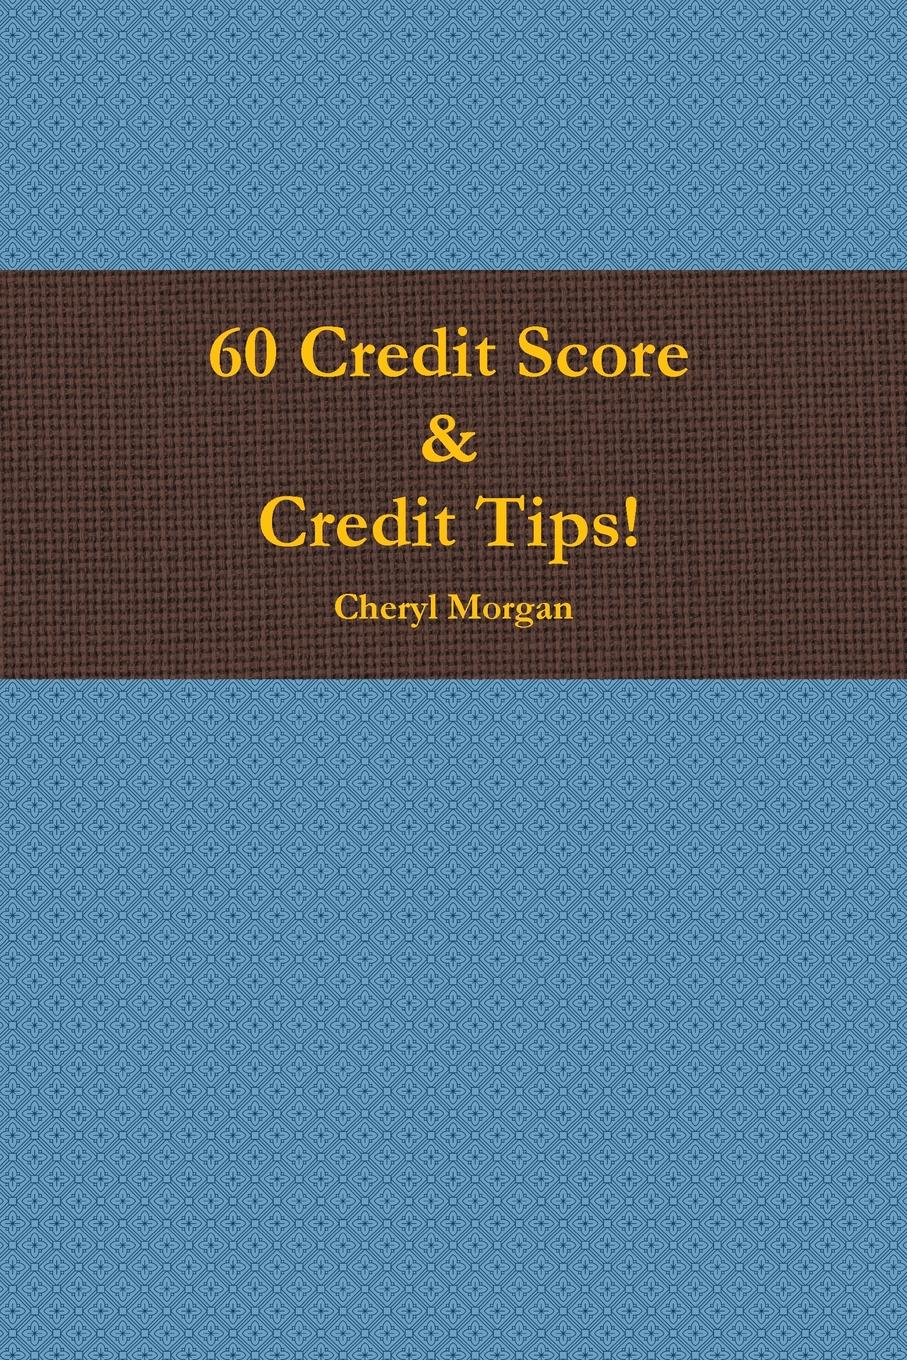 60 Credit Score Tips. 60 Credit Score& Credit Tips is a great resource if do...